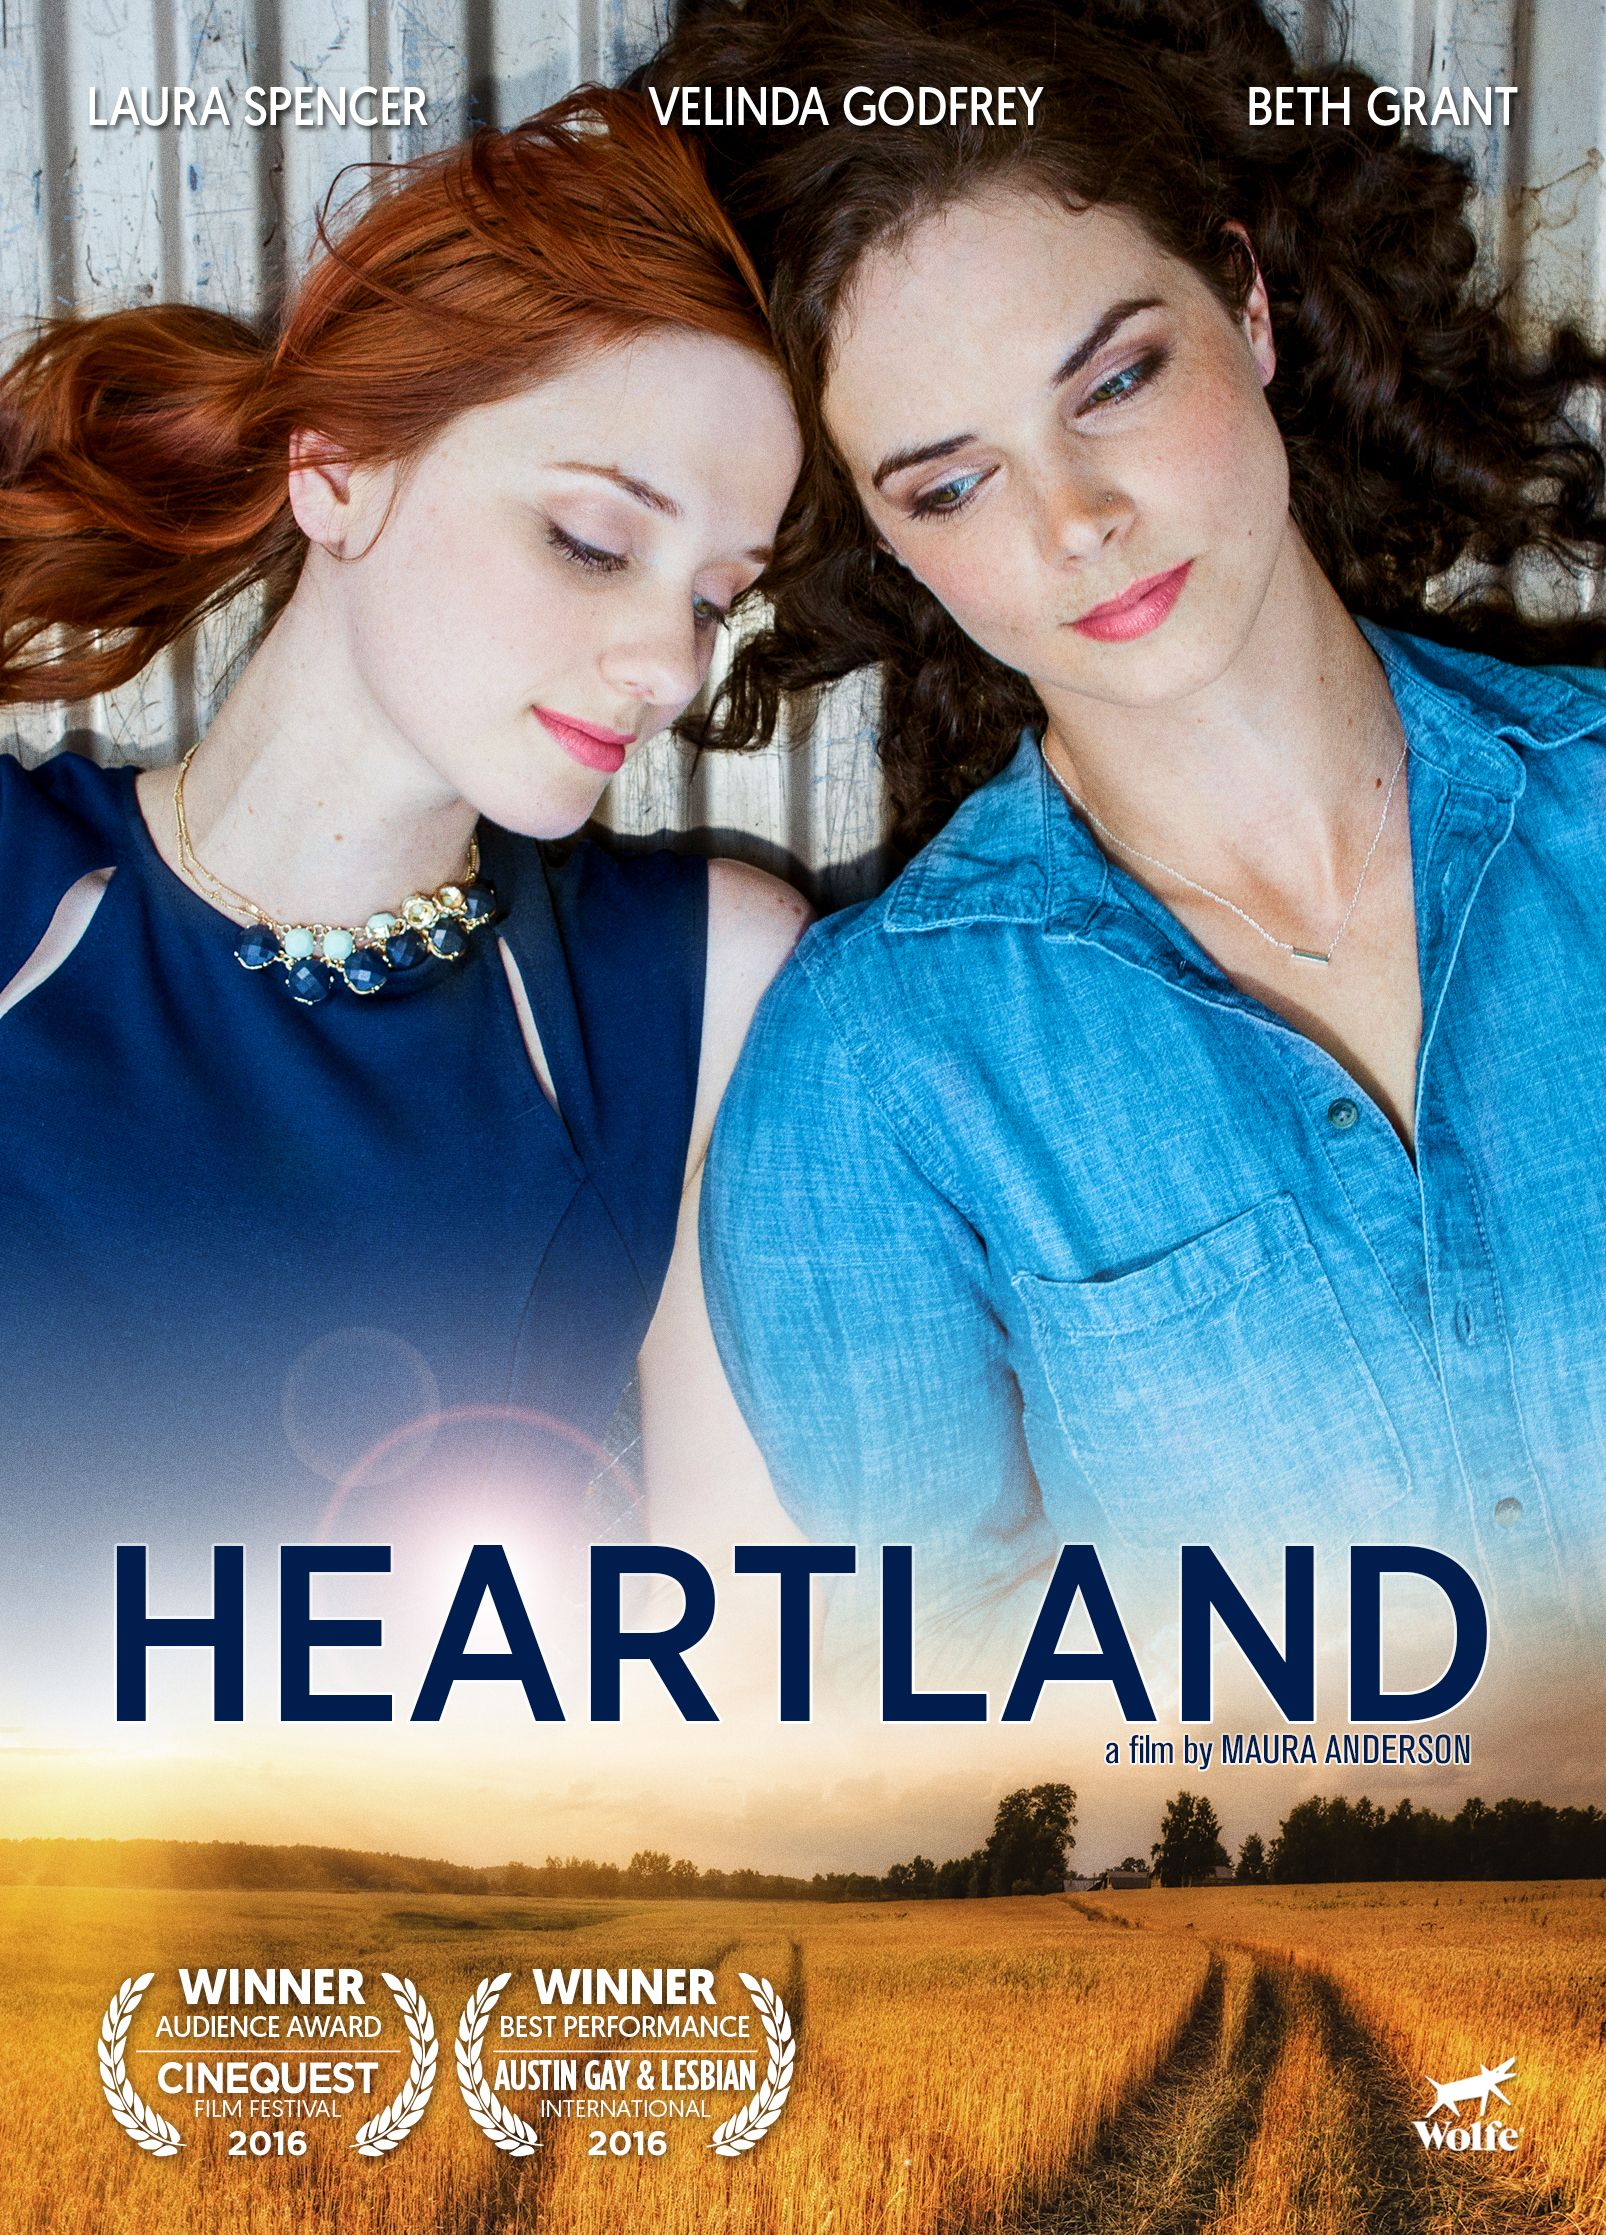 Heartland On Dvd Girl Film Beth Grant Hd Movies